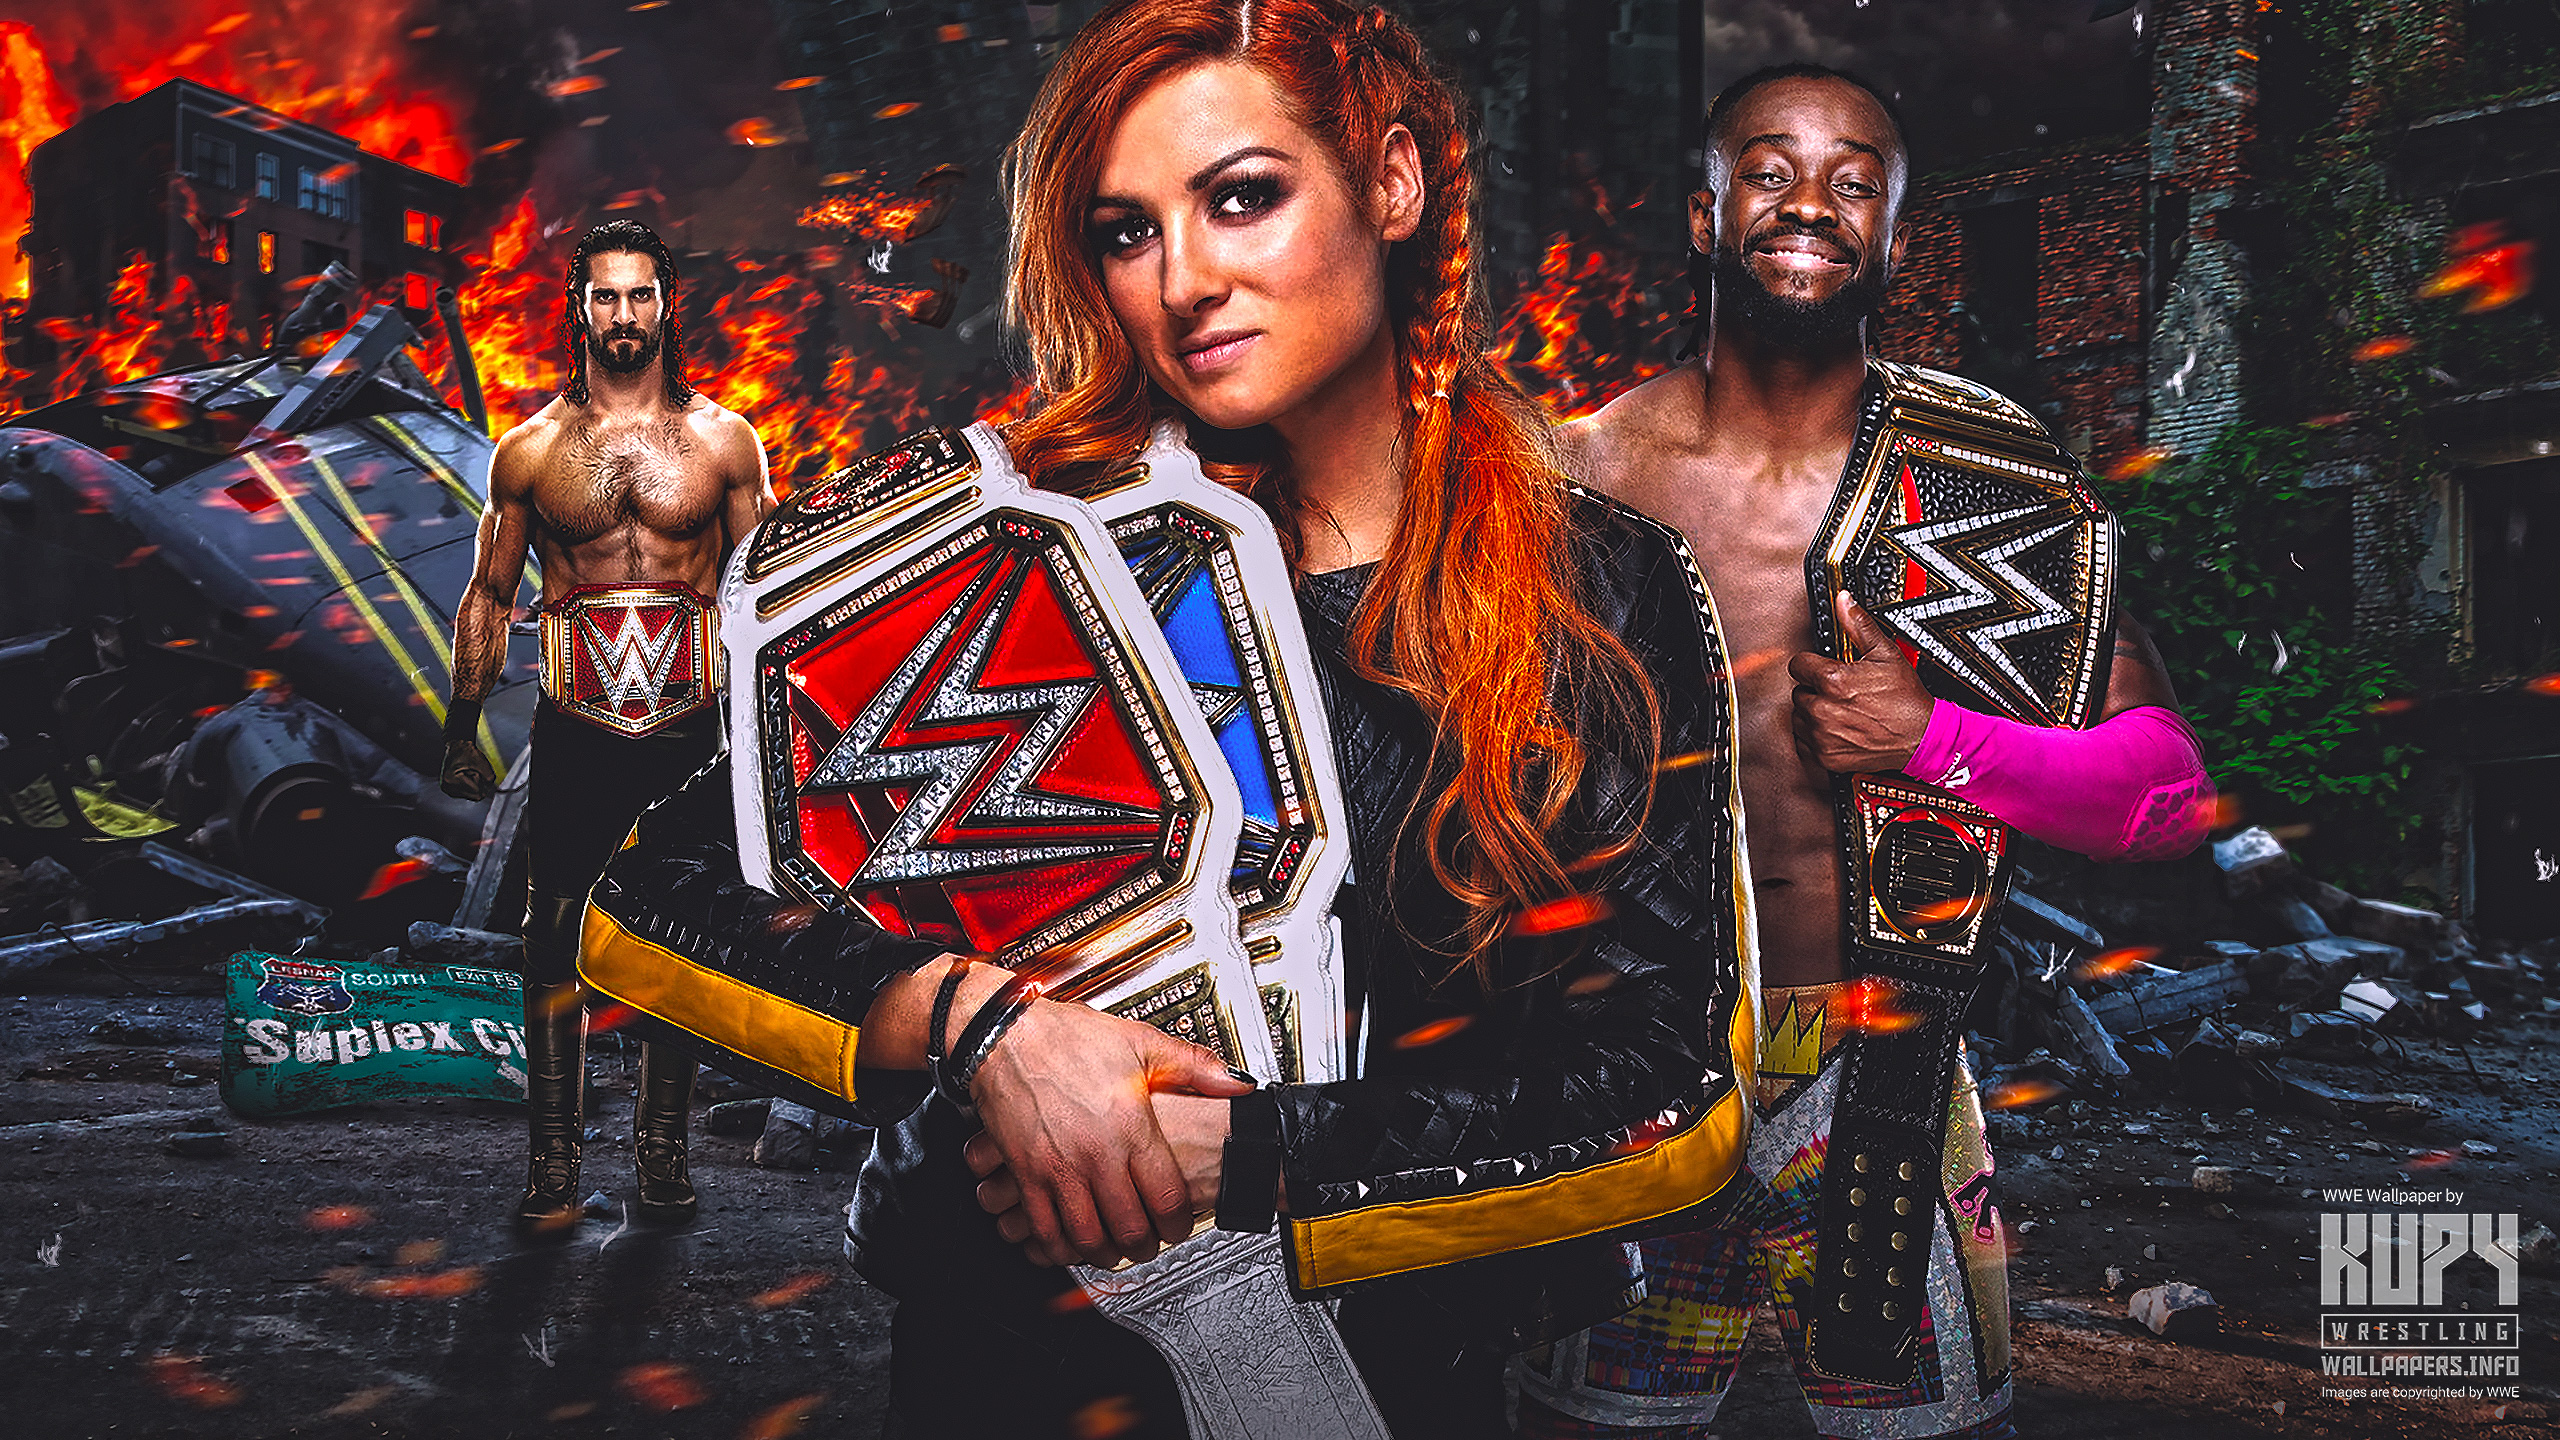 Kupy Wrestling Wallpapers The latest source for your WWE 2560x1440